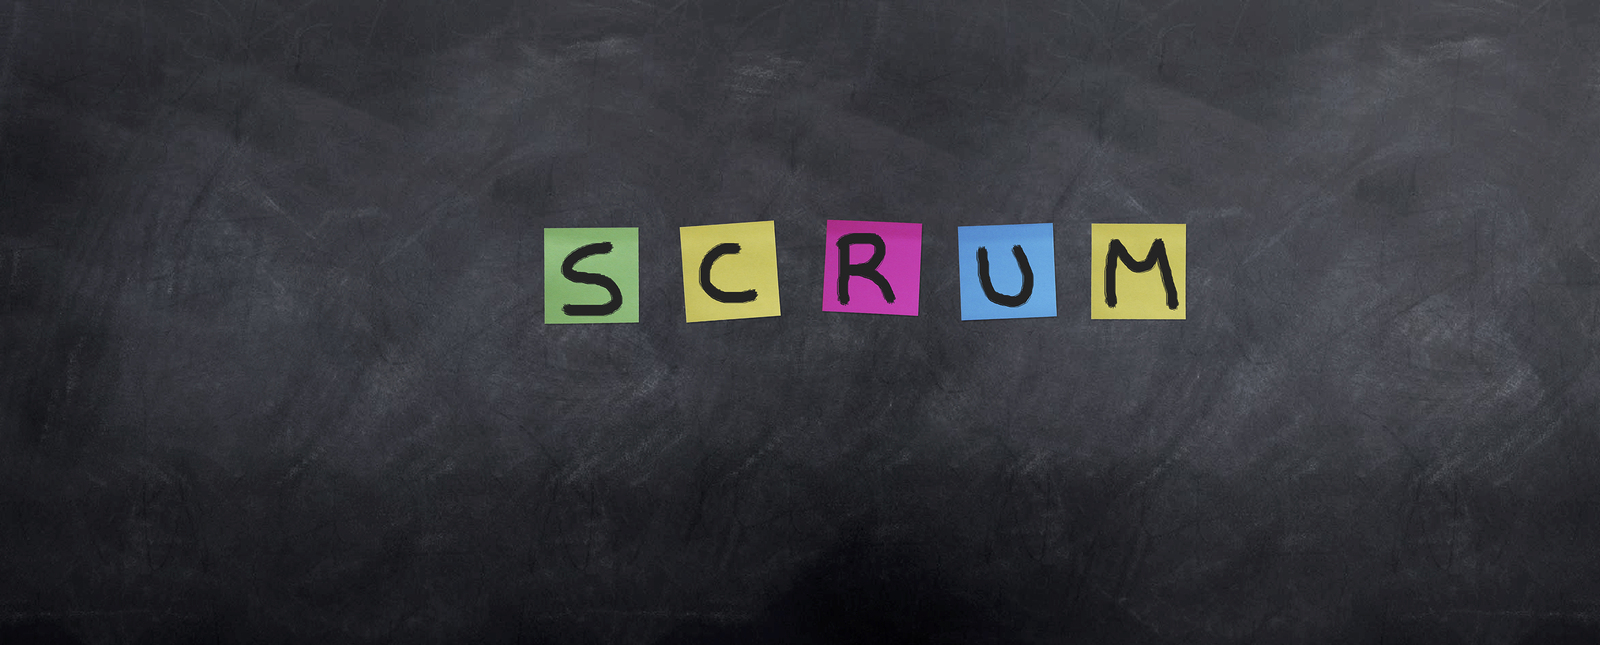 4 Common Agile-Scrum Mistakes And Ways To Avoid Them